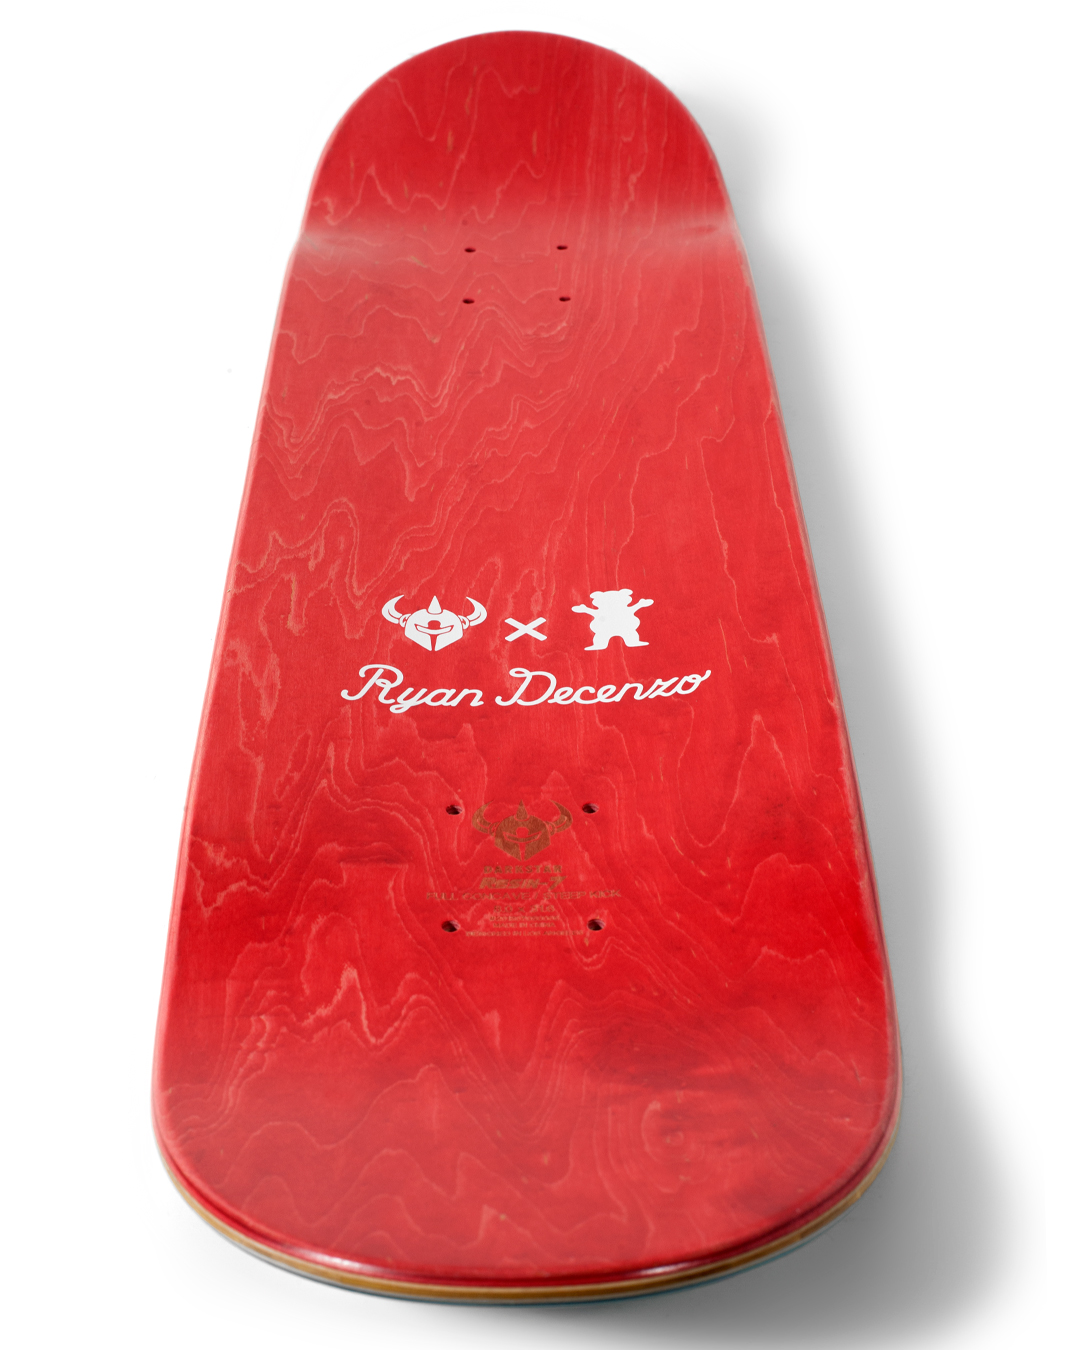 Darkstar Skateboards Summer 2019 Grizzly Ryan Decenzo 3